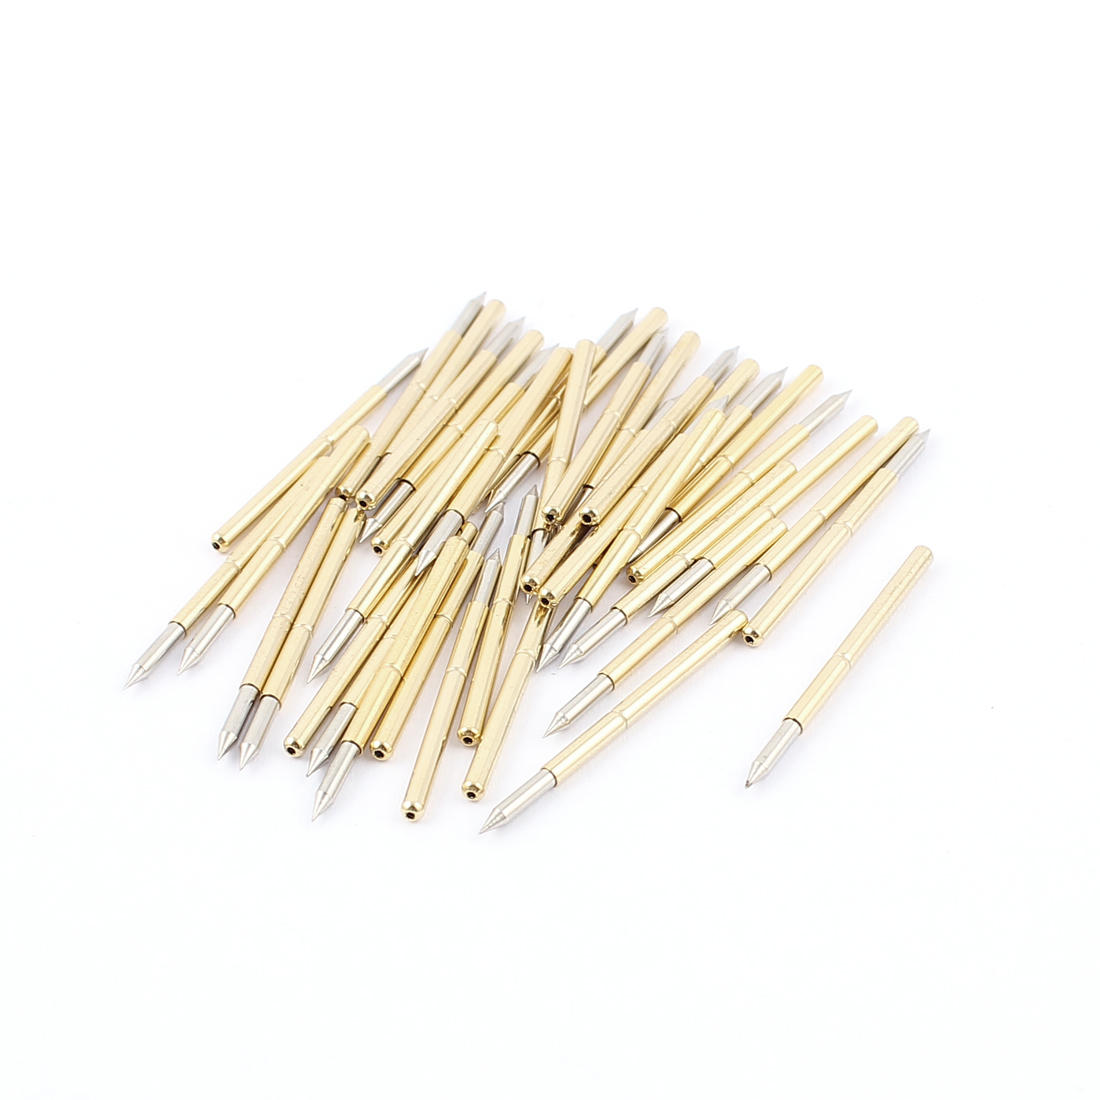 40Pcs P125B 1.6mm Dia Spear Tip 33mm Long Metal Spring Test Probes Testing Pins Gold Tone